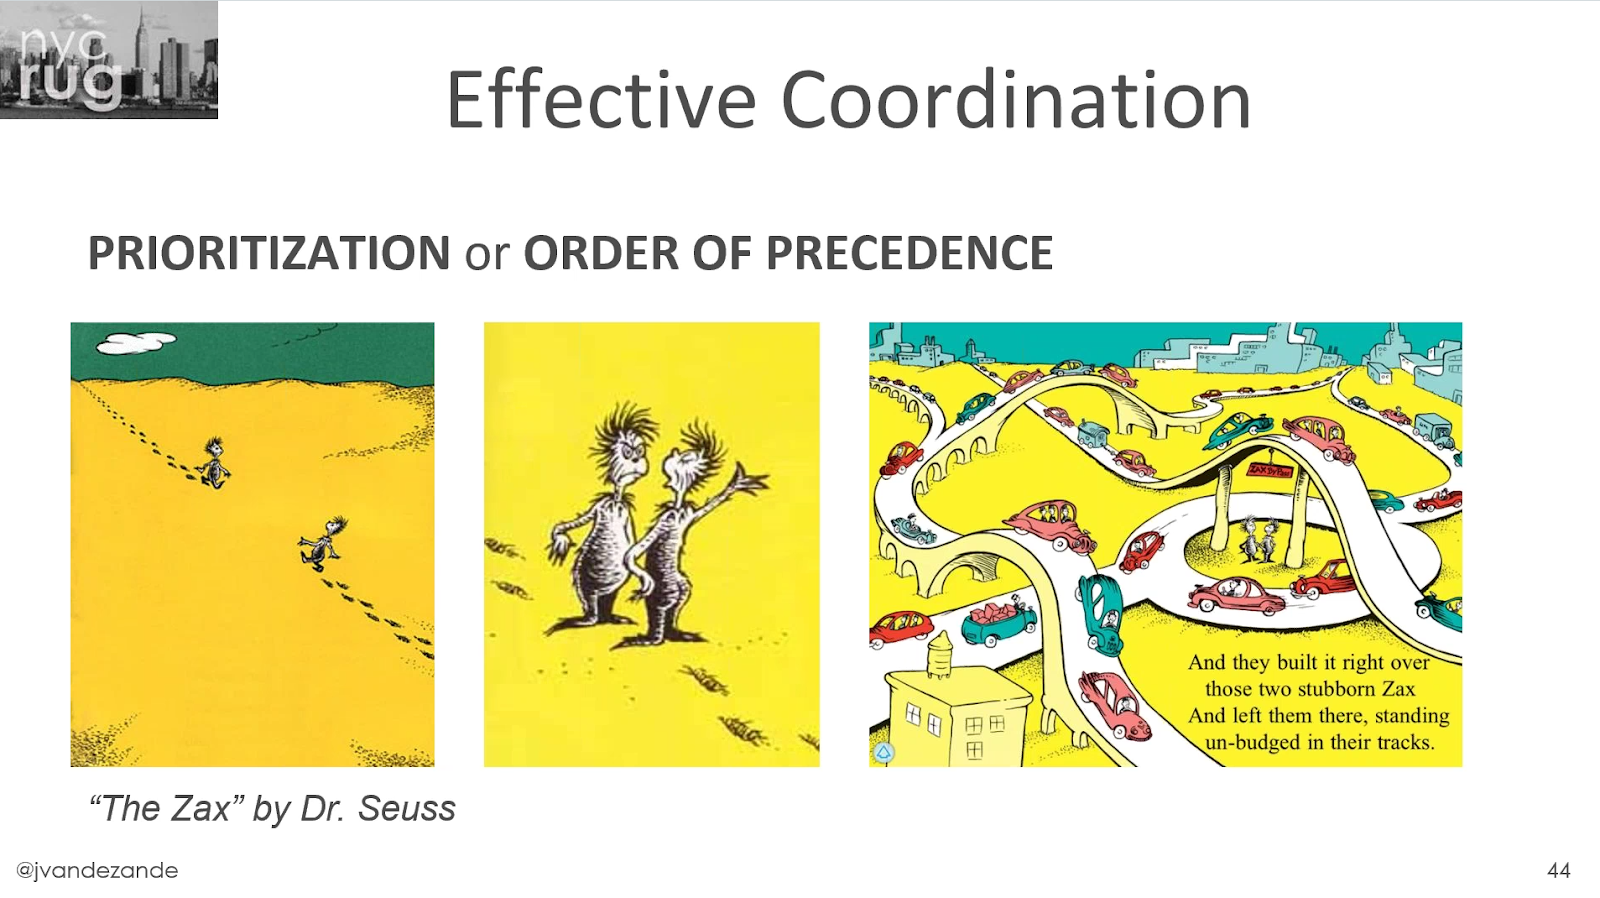 Effective coordination, priorization or order precedence